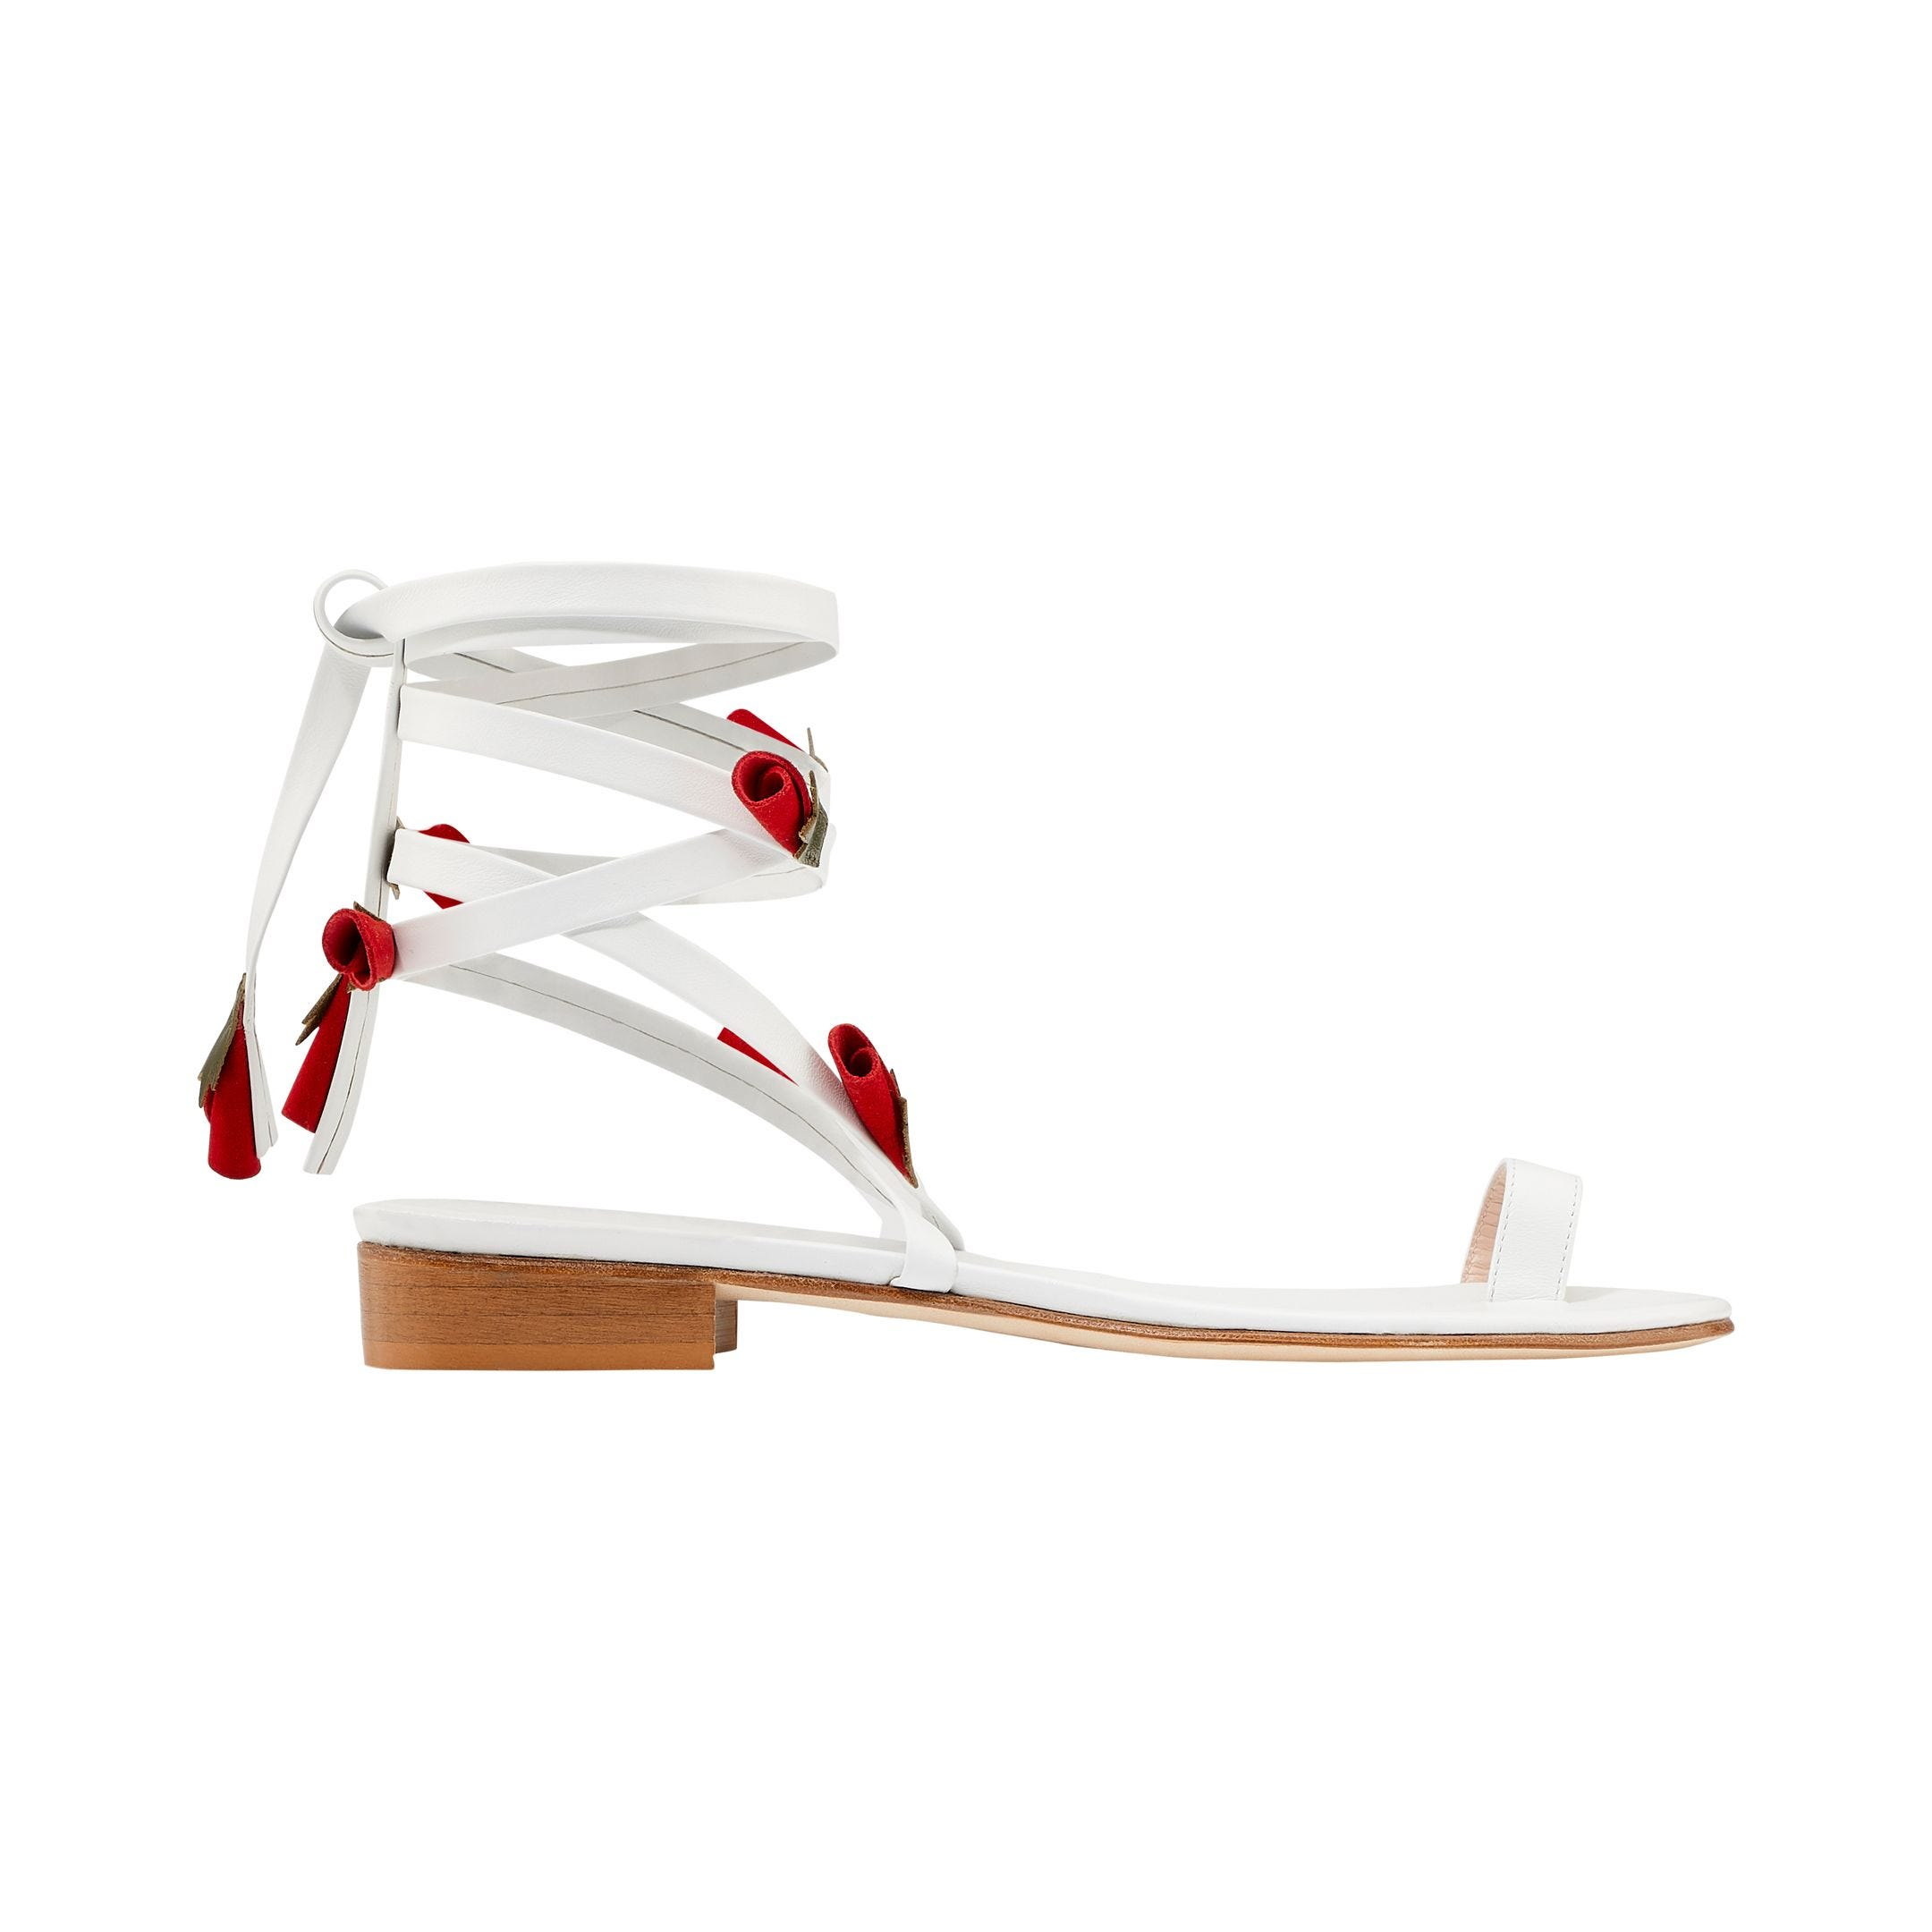 Is This The New Gladiator Sandal?